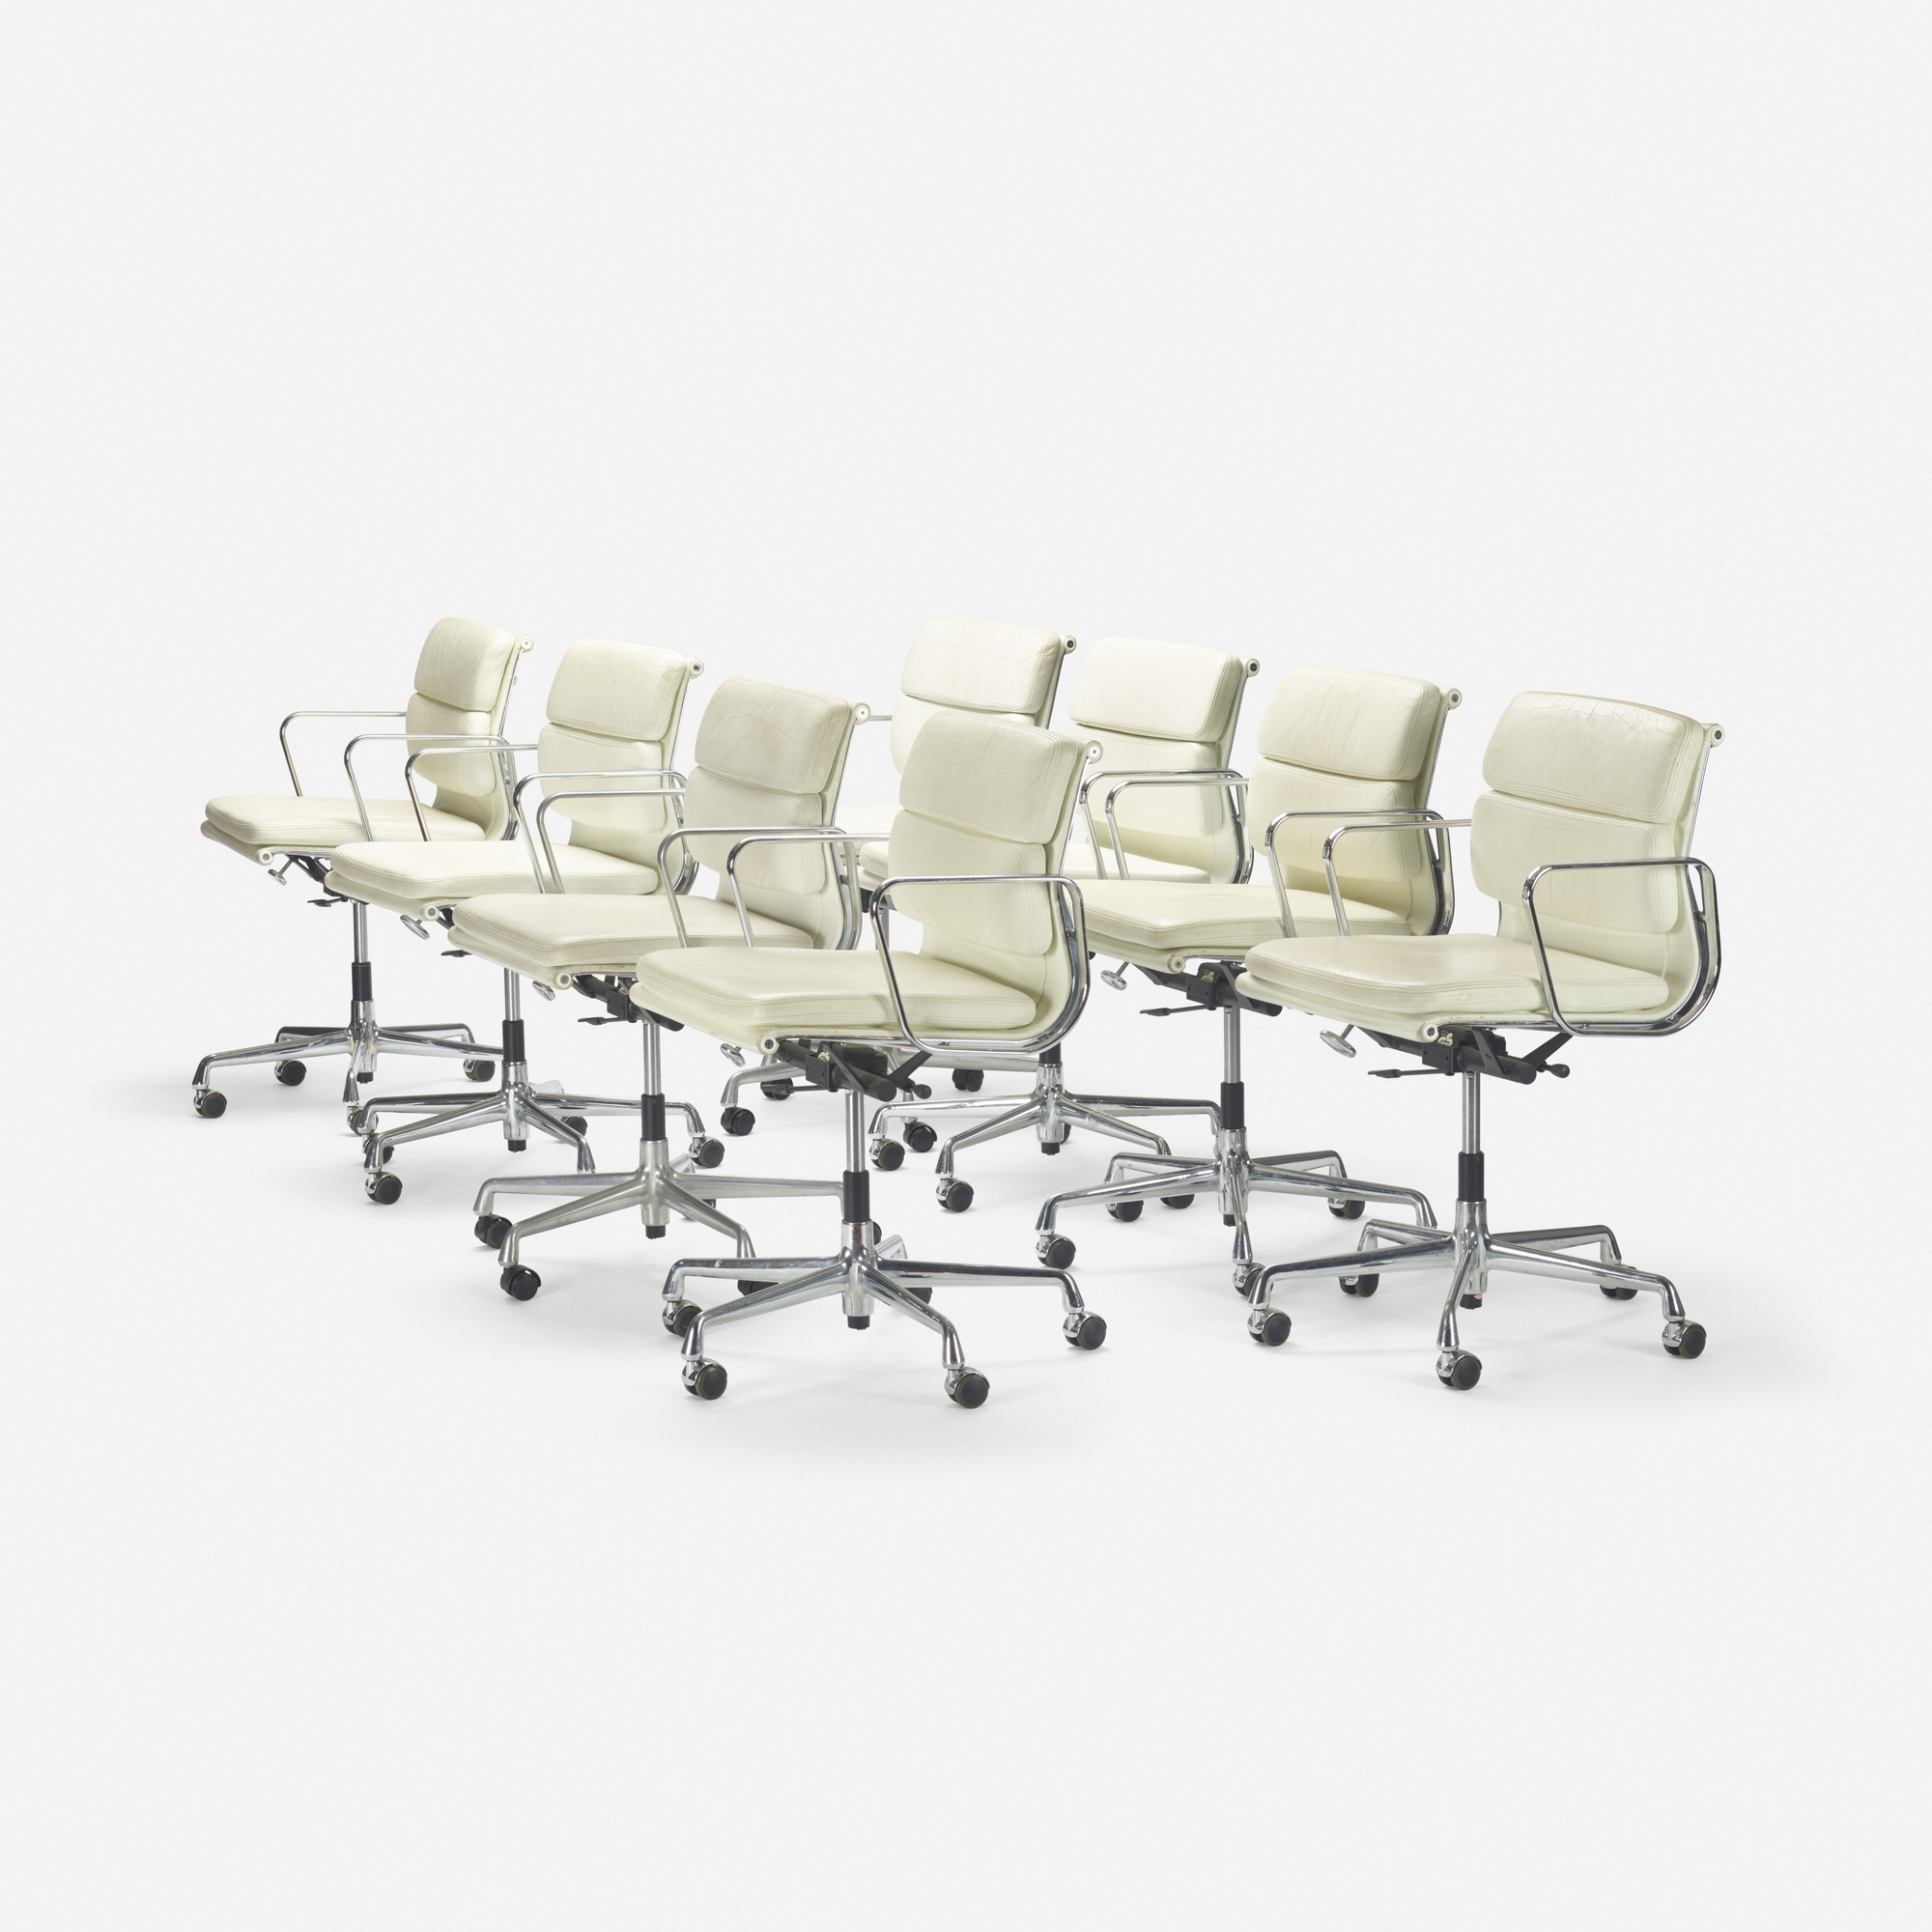 157: Charles and Ray Eames / Soft Pad chairs, set of eight (1 of 2)